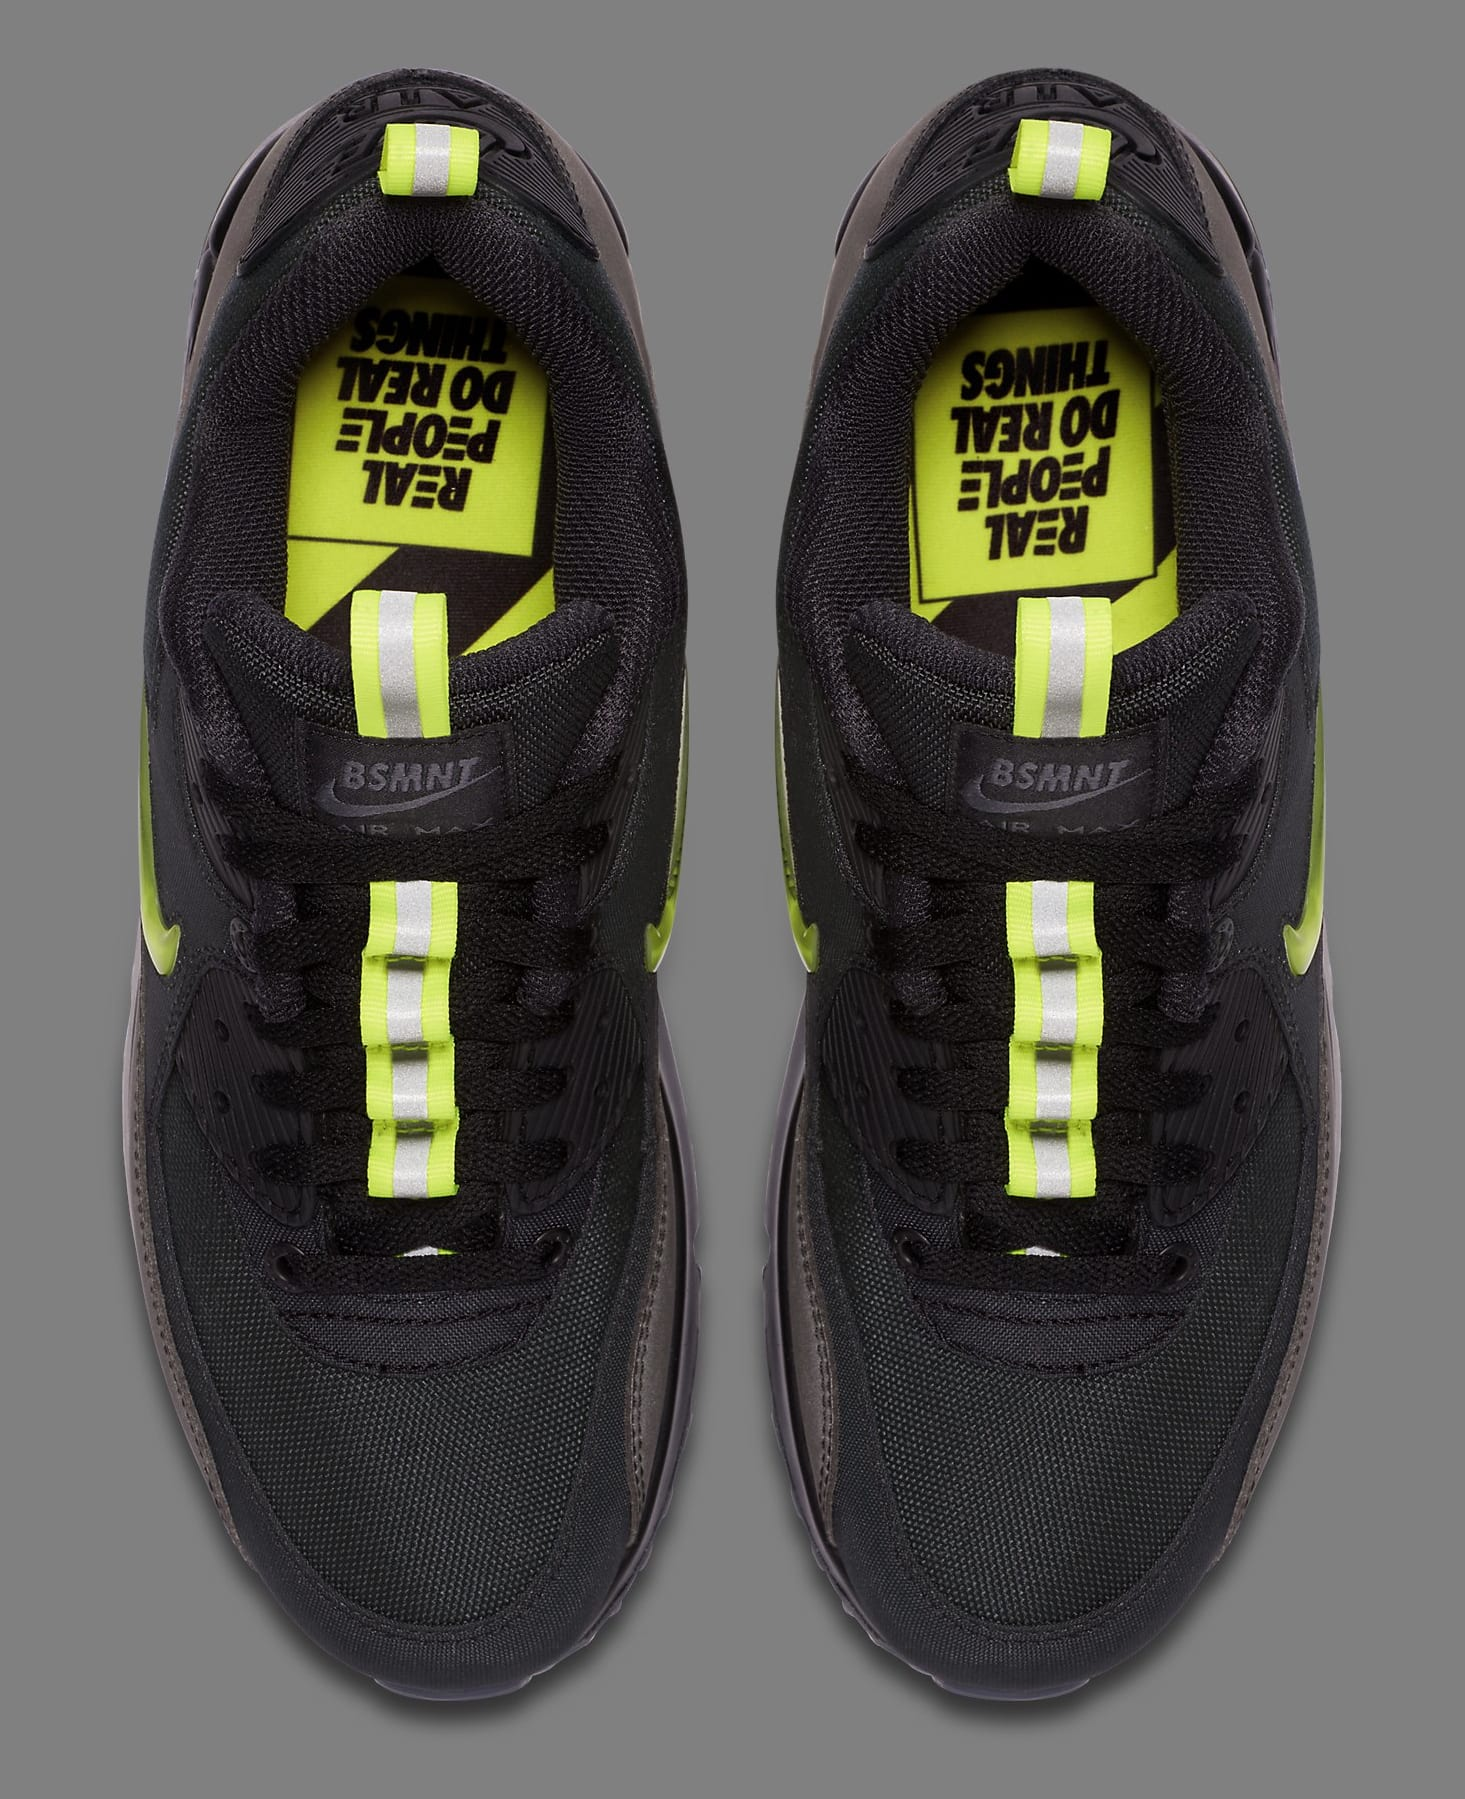 the-basement-nike-air-max-90-manchester-cu5967-001-top